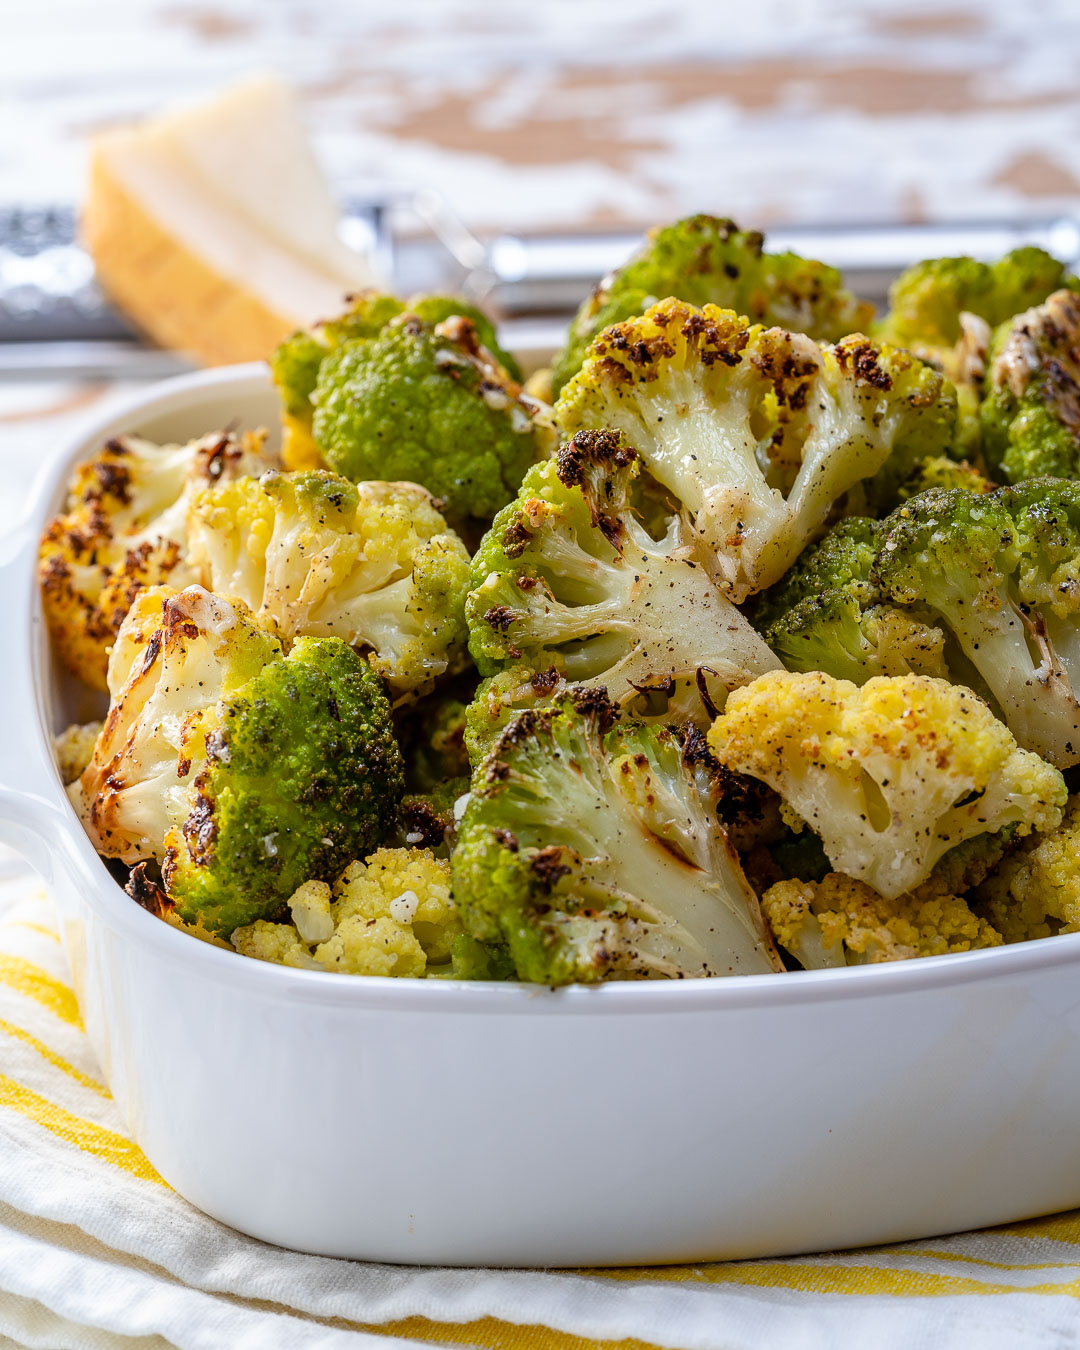 Parmesan Roasted Broccoli For The Perfect Clean Side Dish Clean Food Crush